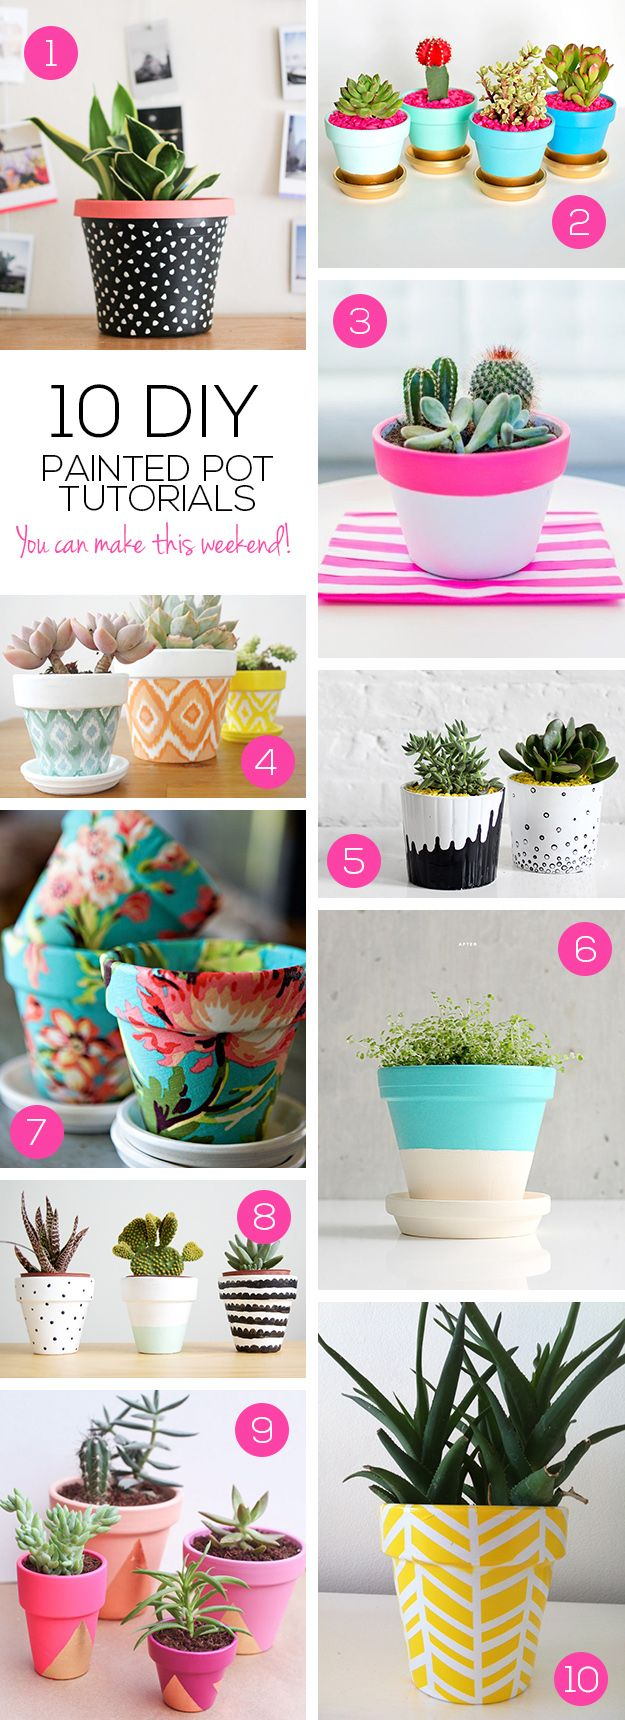 10 DIY Pretty Plant Pots You Can Create This Weekend | http://blog.oakfurnitureland.co.uk/inspiration-station/10-diy-pretty-plant-pots-can-create-weekend/